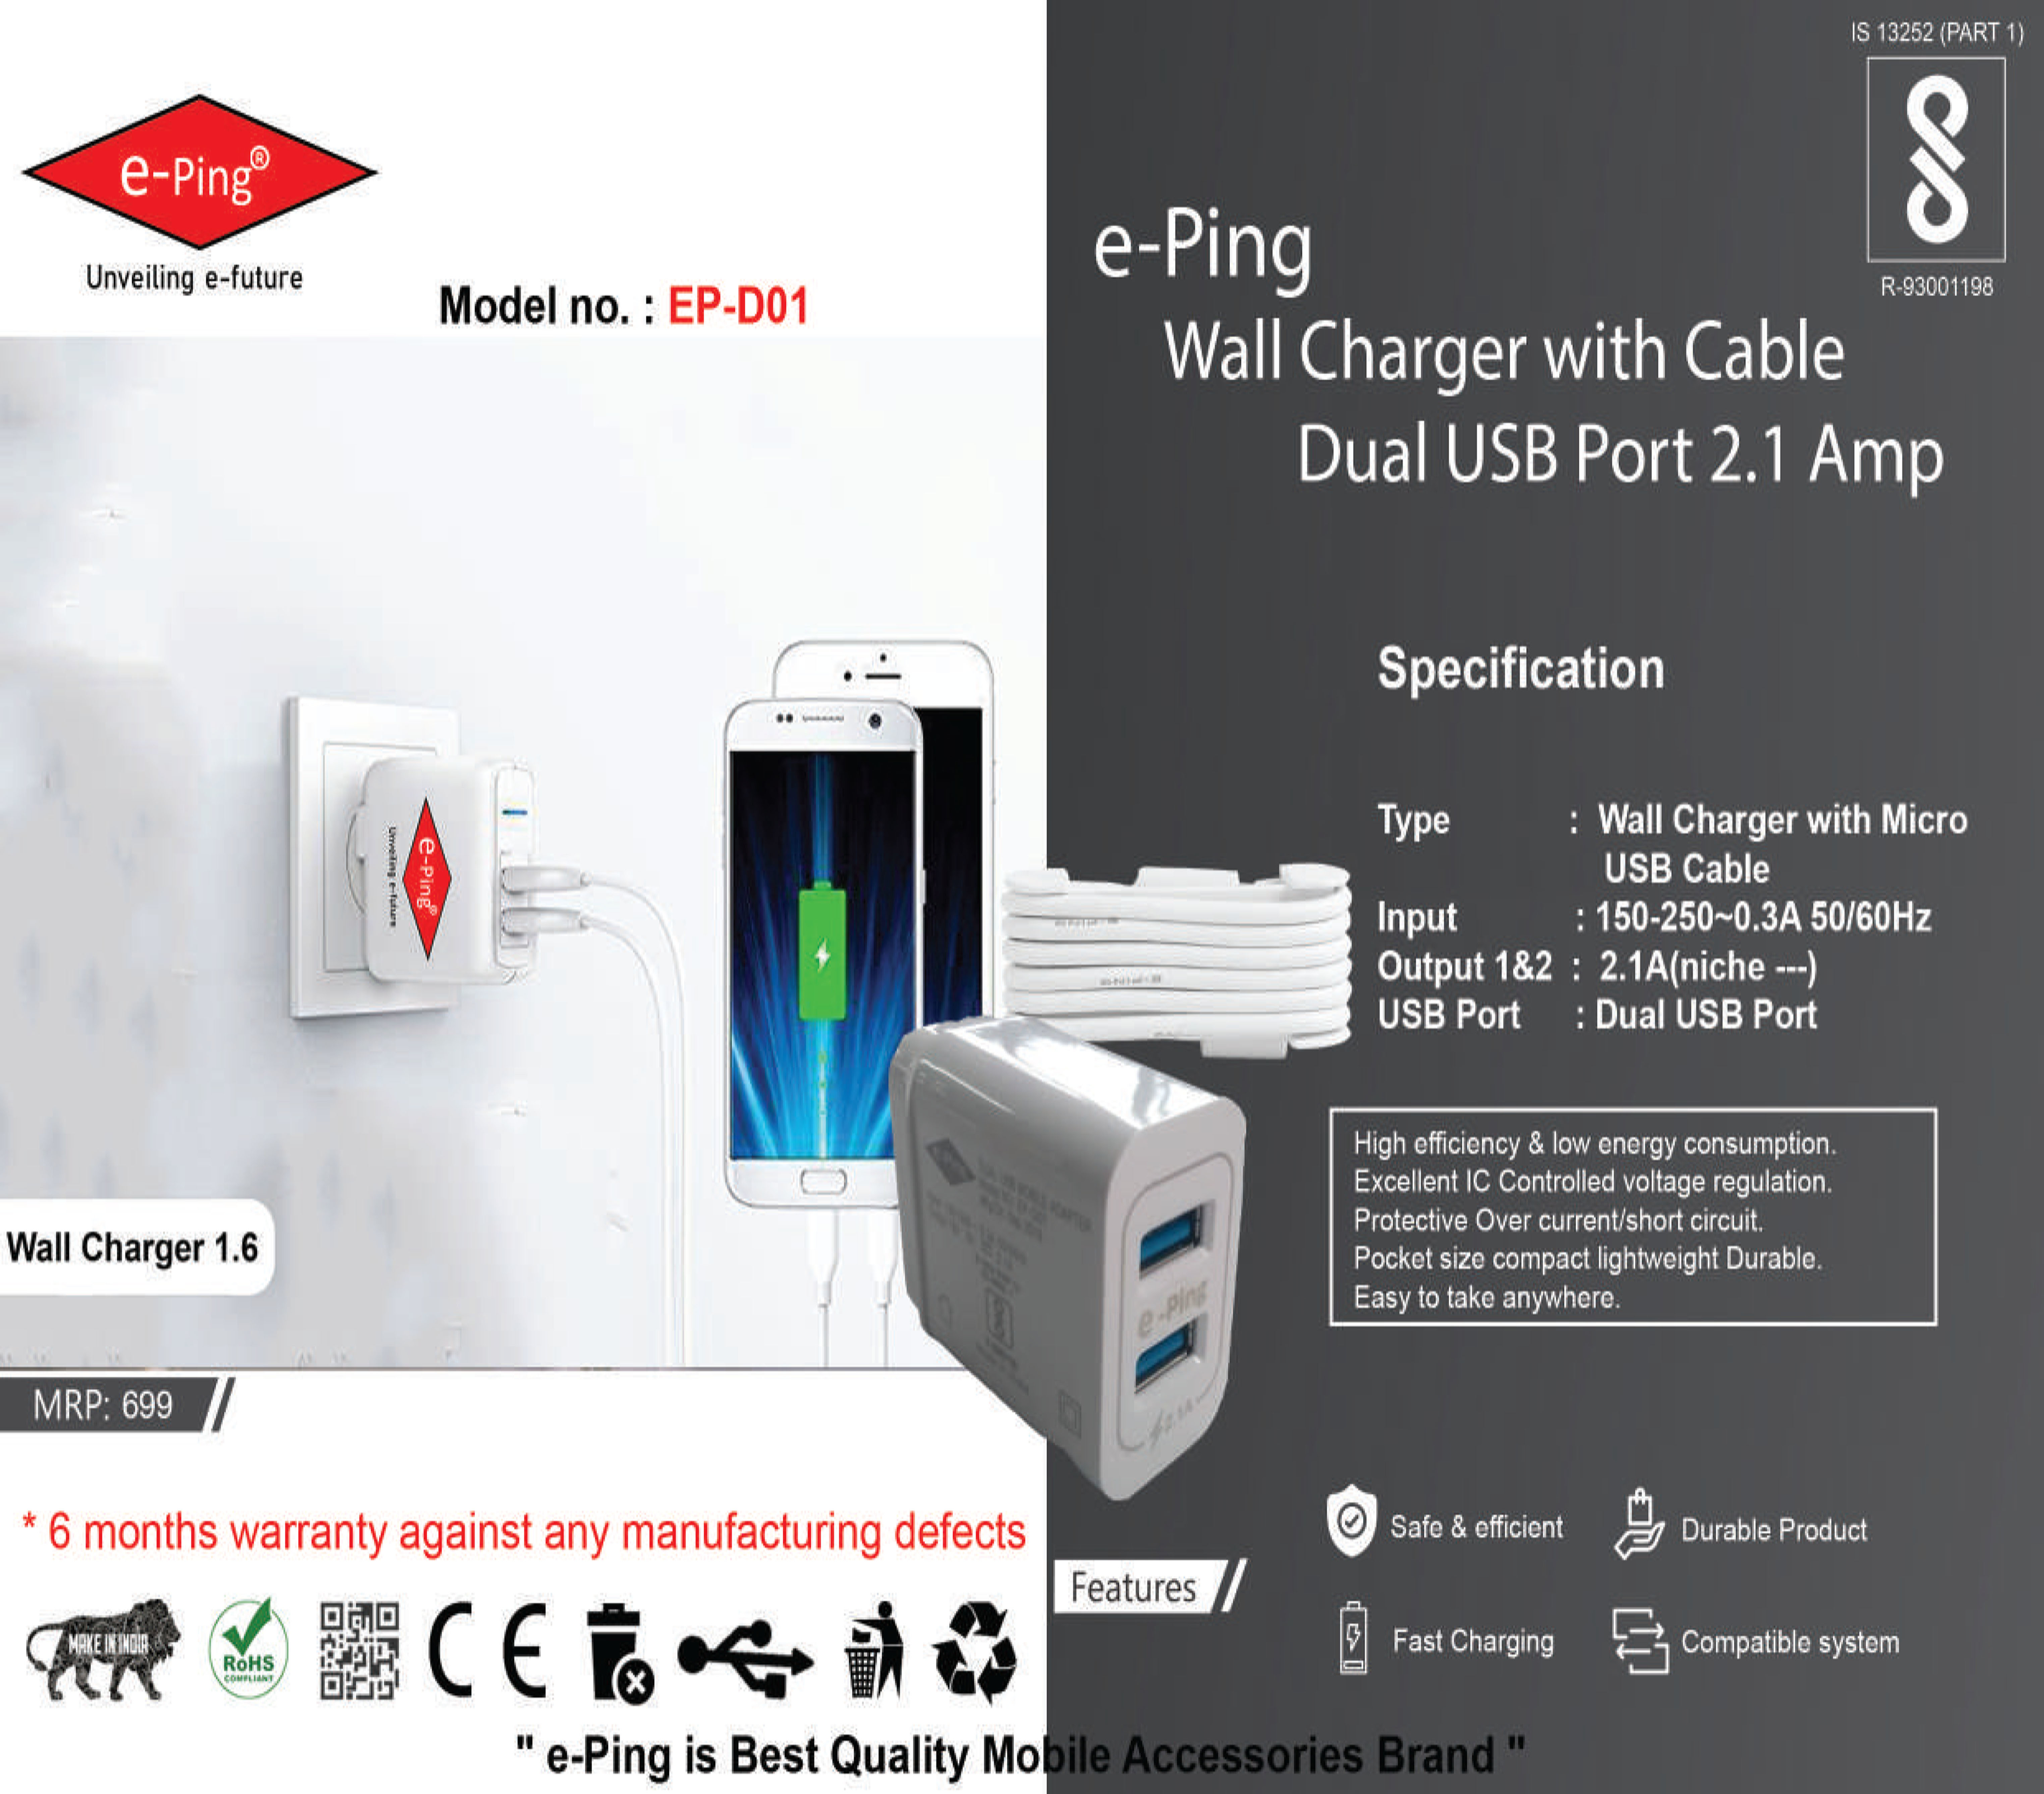 Wall Charger With Cable Dual Usb Port 2.1 Amp